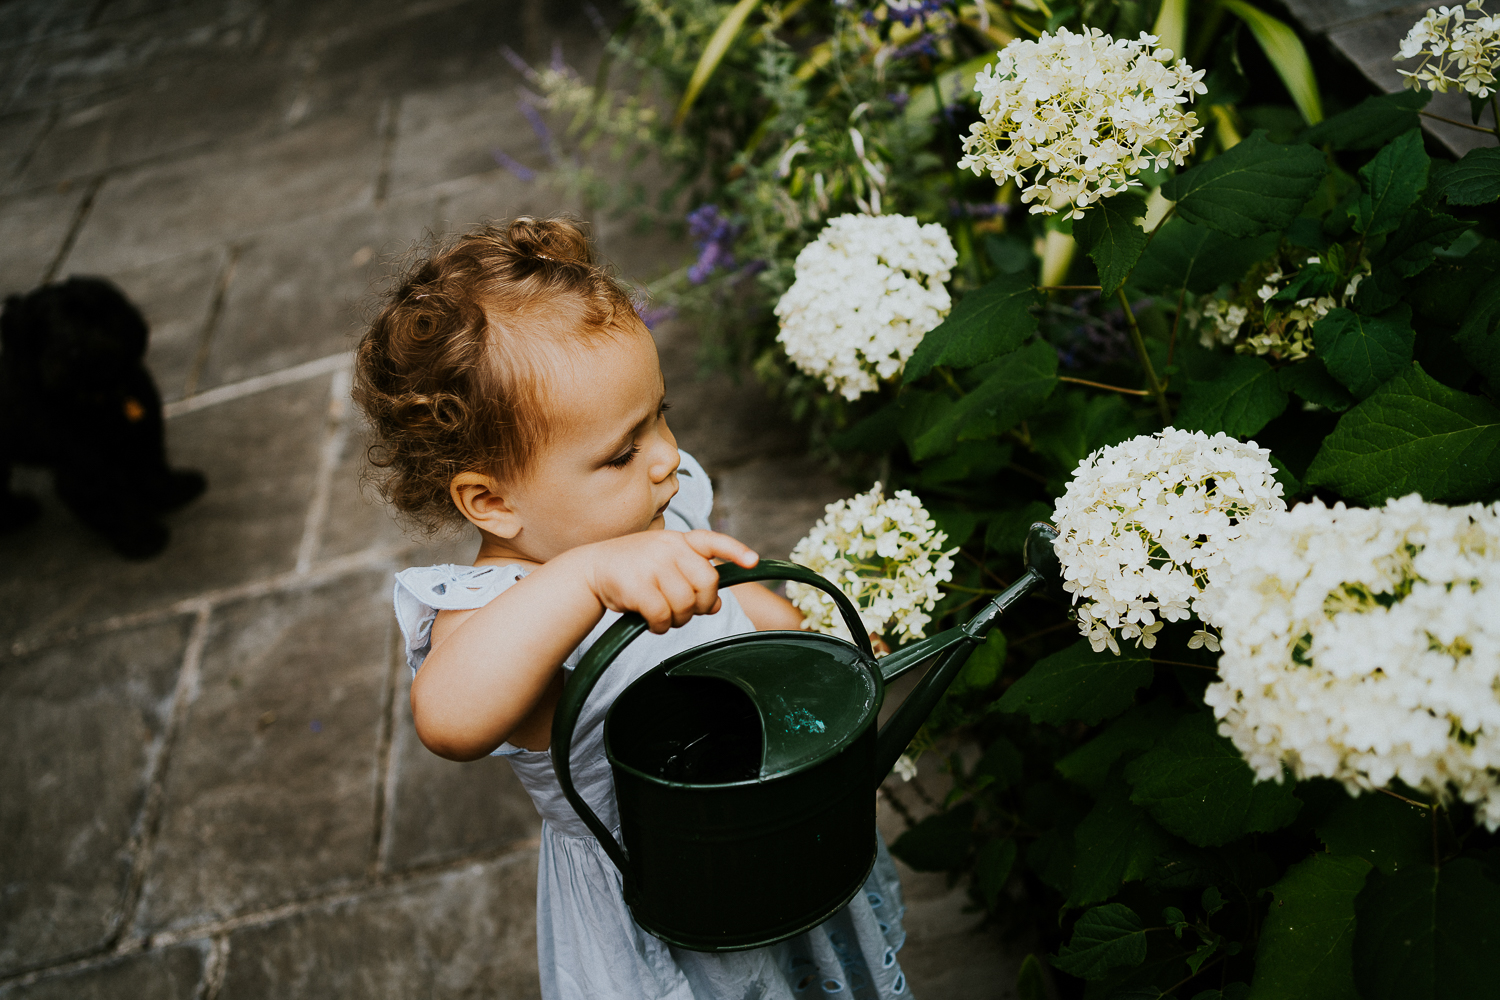 NORTH KENSINGTON FAMILY PHOTO SESSION toddler girl watering flowers in garden at home